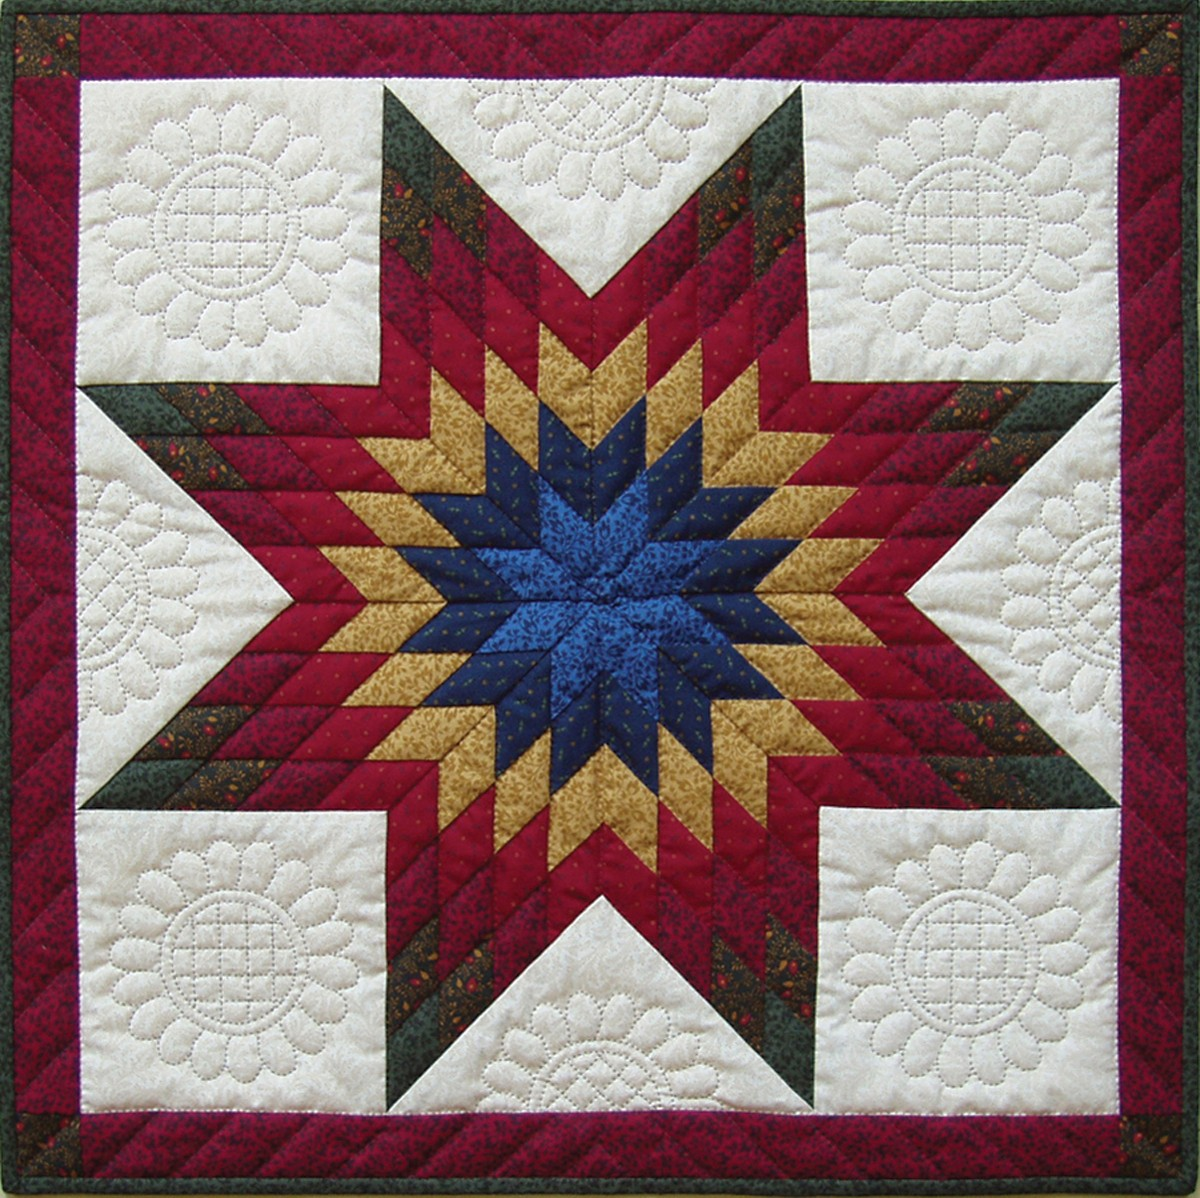 The intricately beautiful Lone Star quilt design.